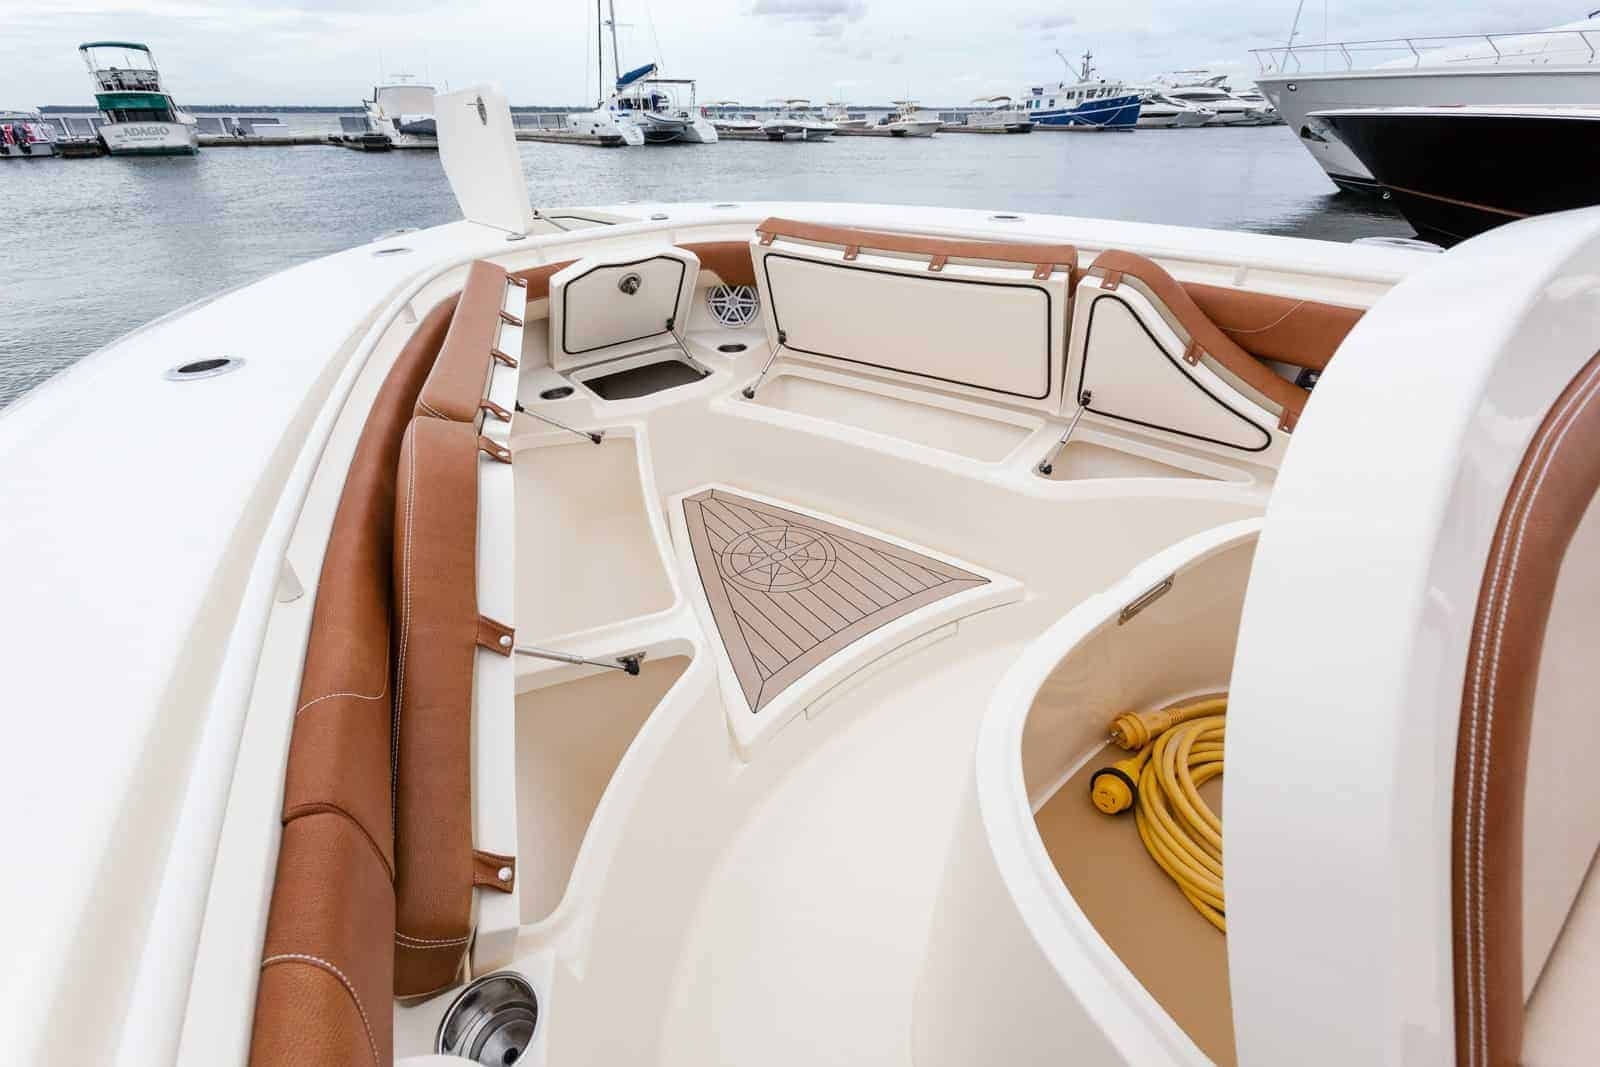 355LXF bow storage compartments open